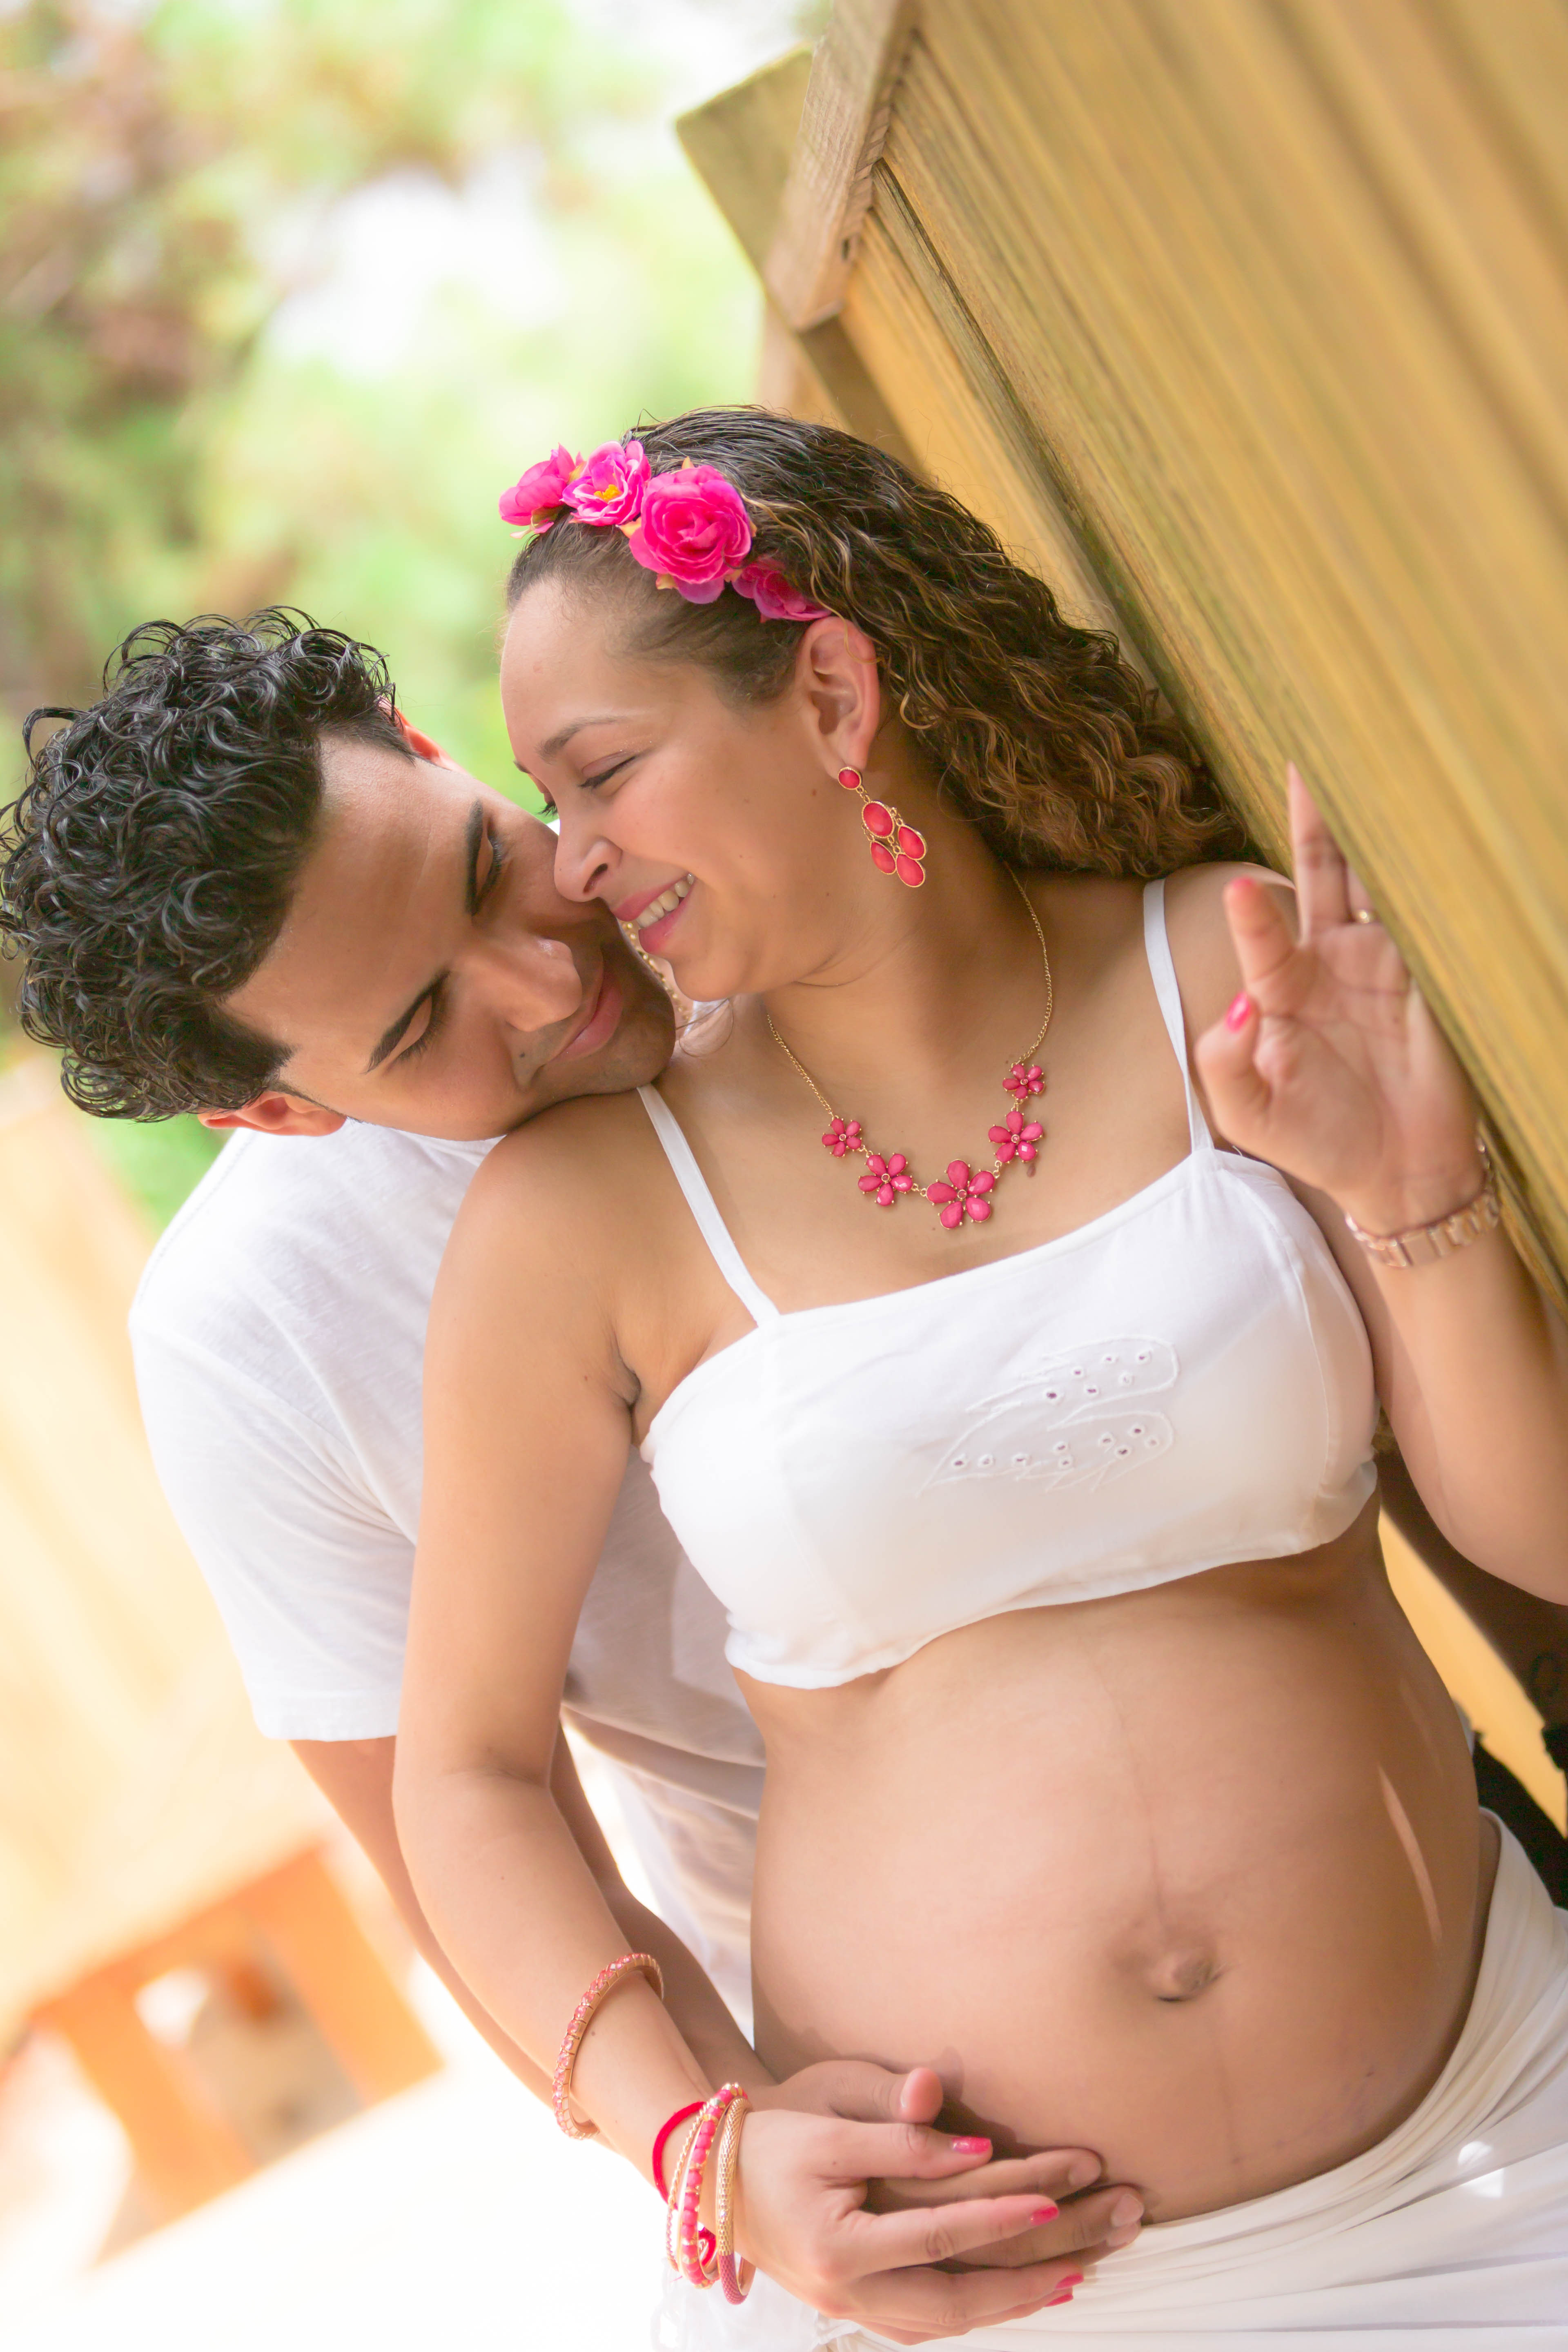 Alfredo Valentine Couture Bridal Photography Maternity Session at Morikami Japanese Gardens in Delray Beach, Florida